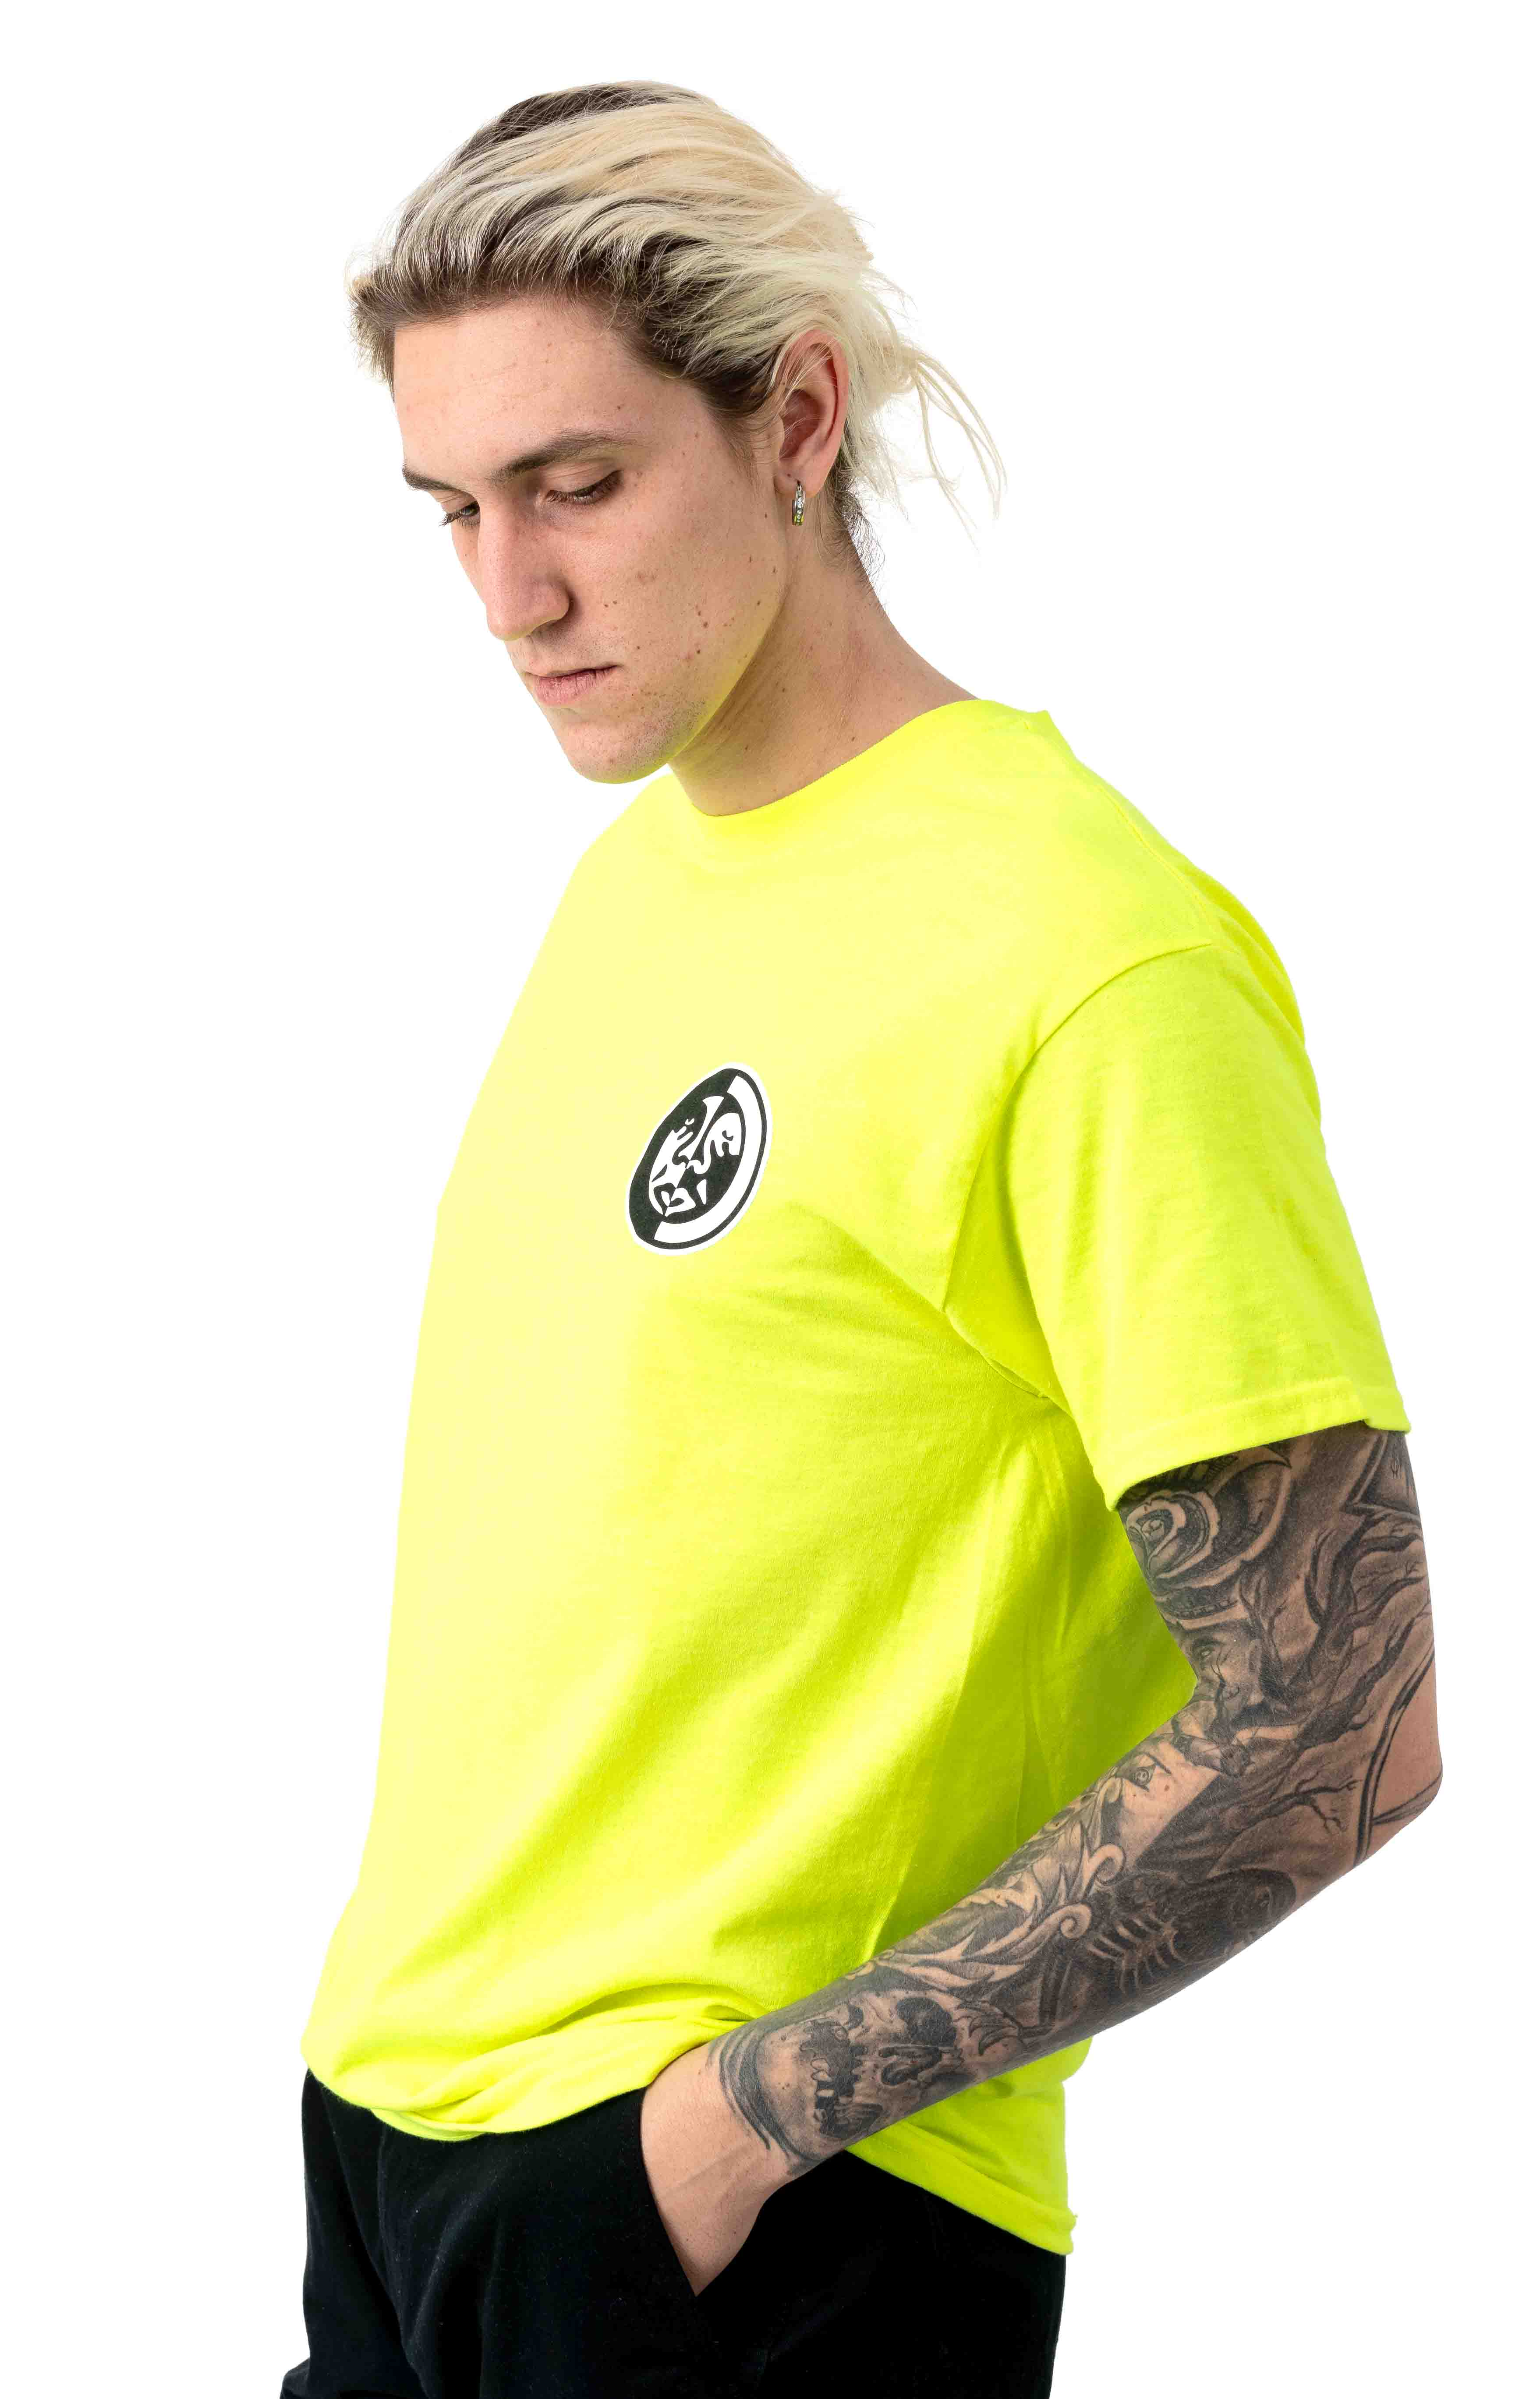 Obey Split Icon 2 T-Shirt - Safety Green 2